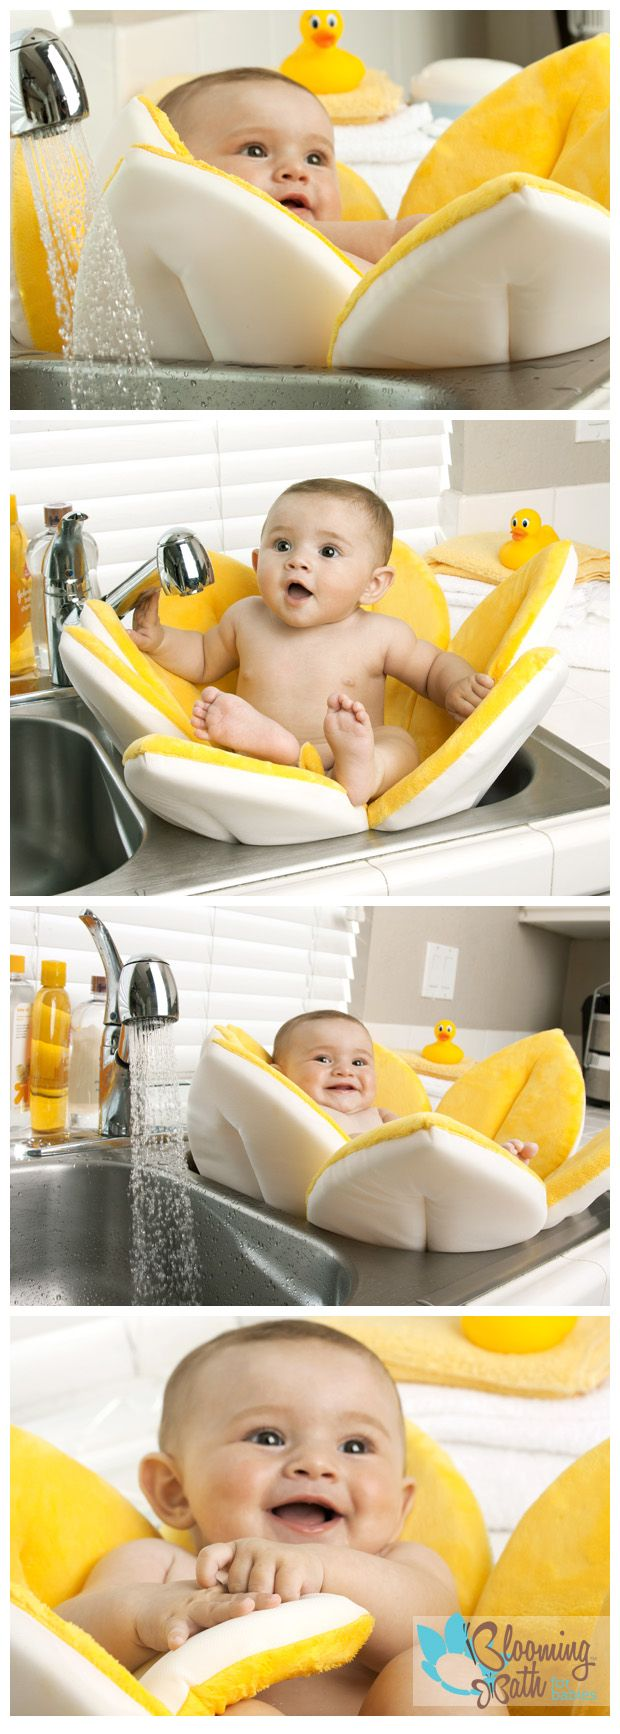 Blooming Bath.  If I have another child, I want one of these.